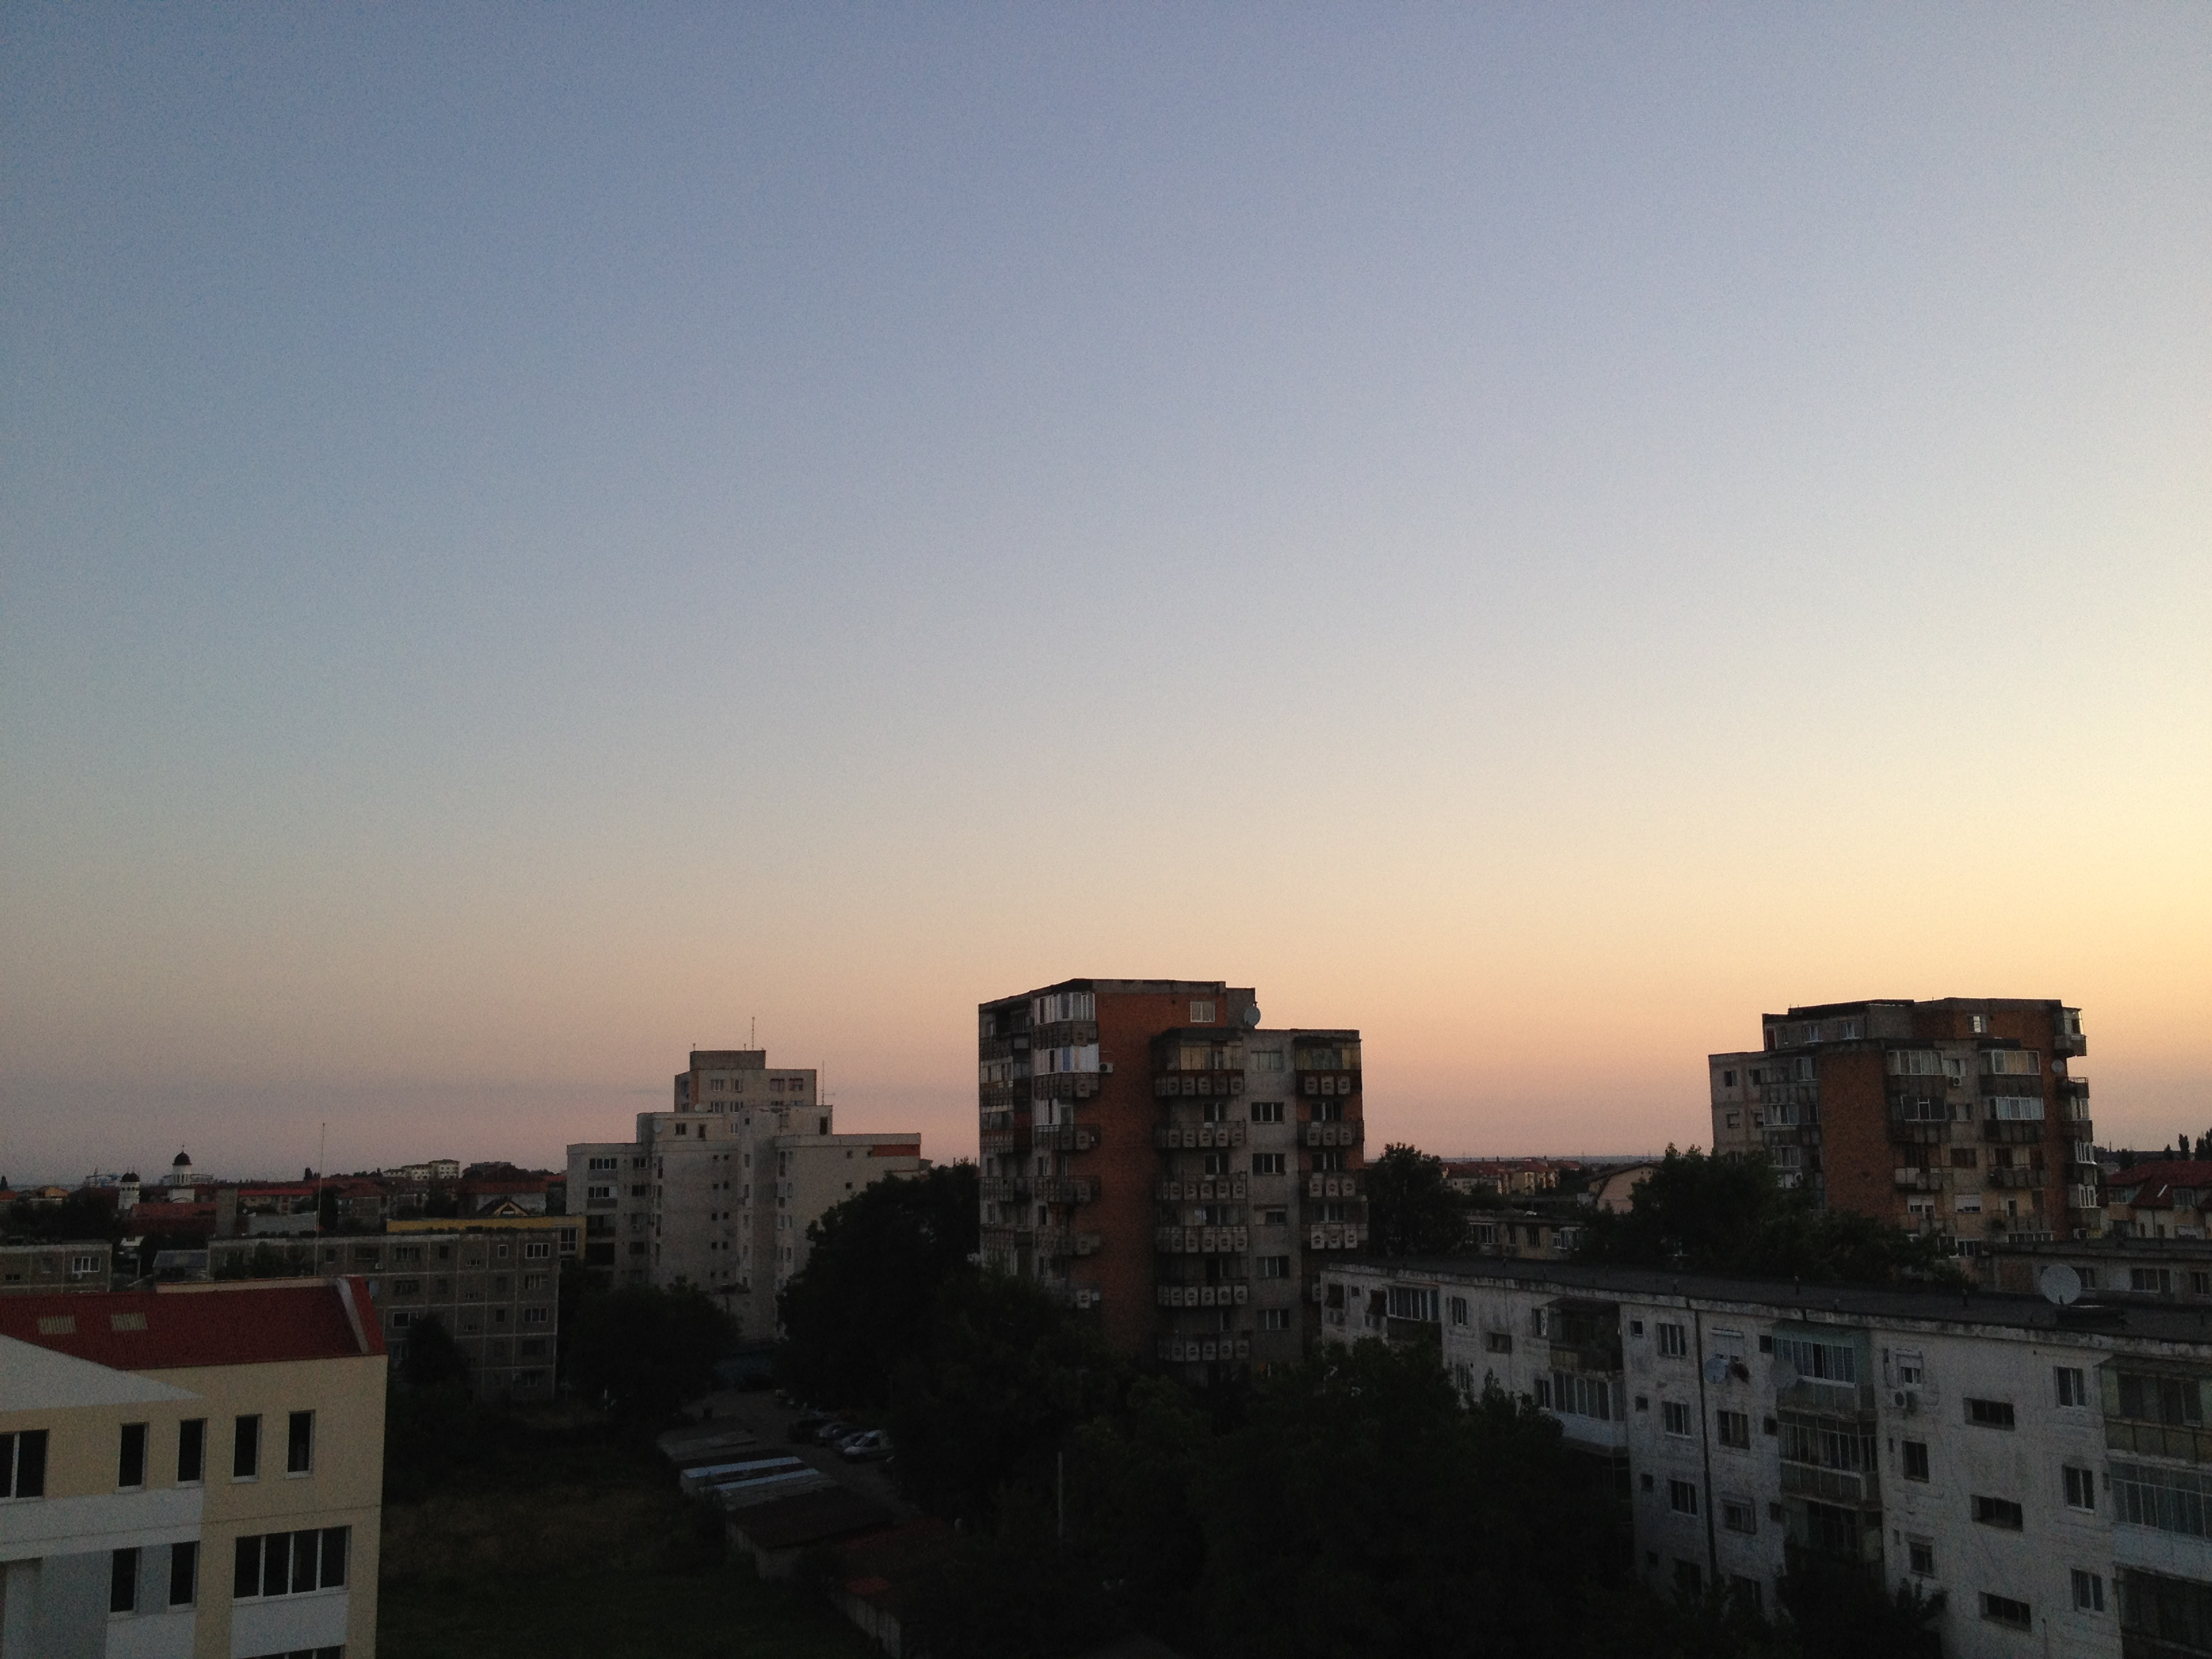 Dawn from my room in Timisoara, Romania. The view includes communist-era apartment buildings.